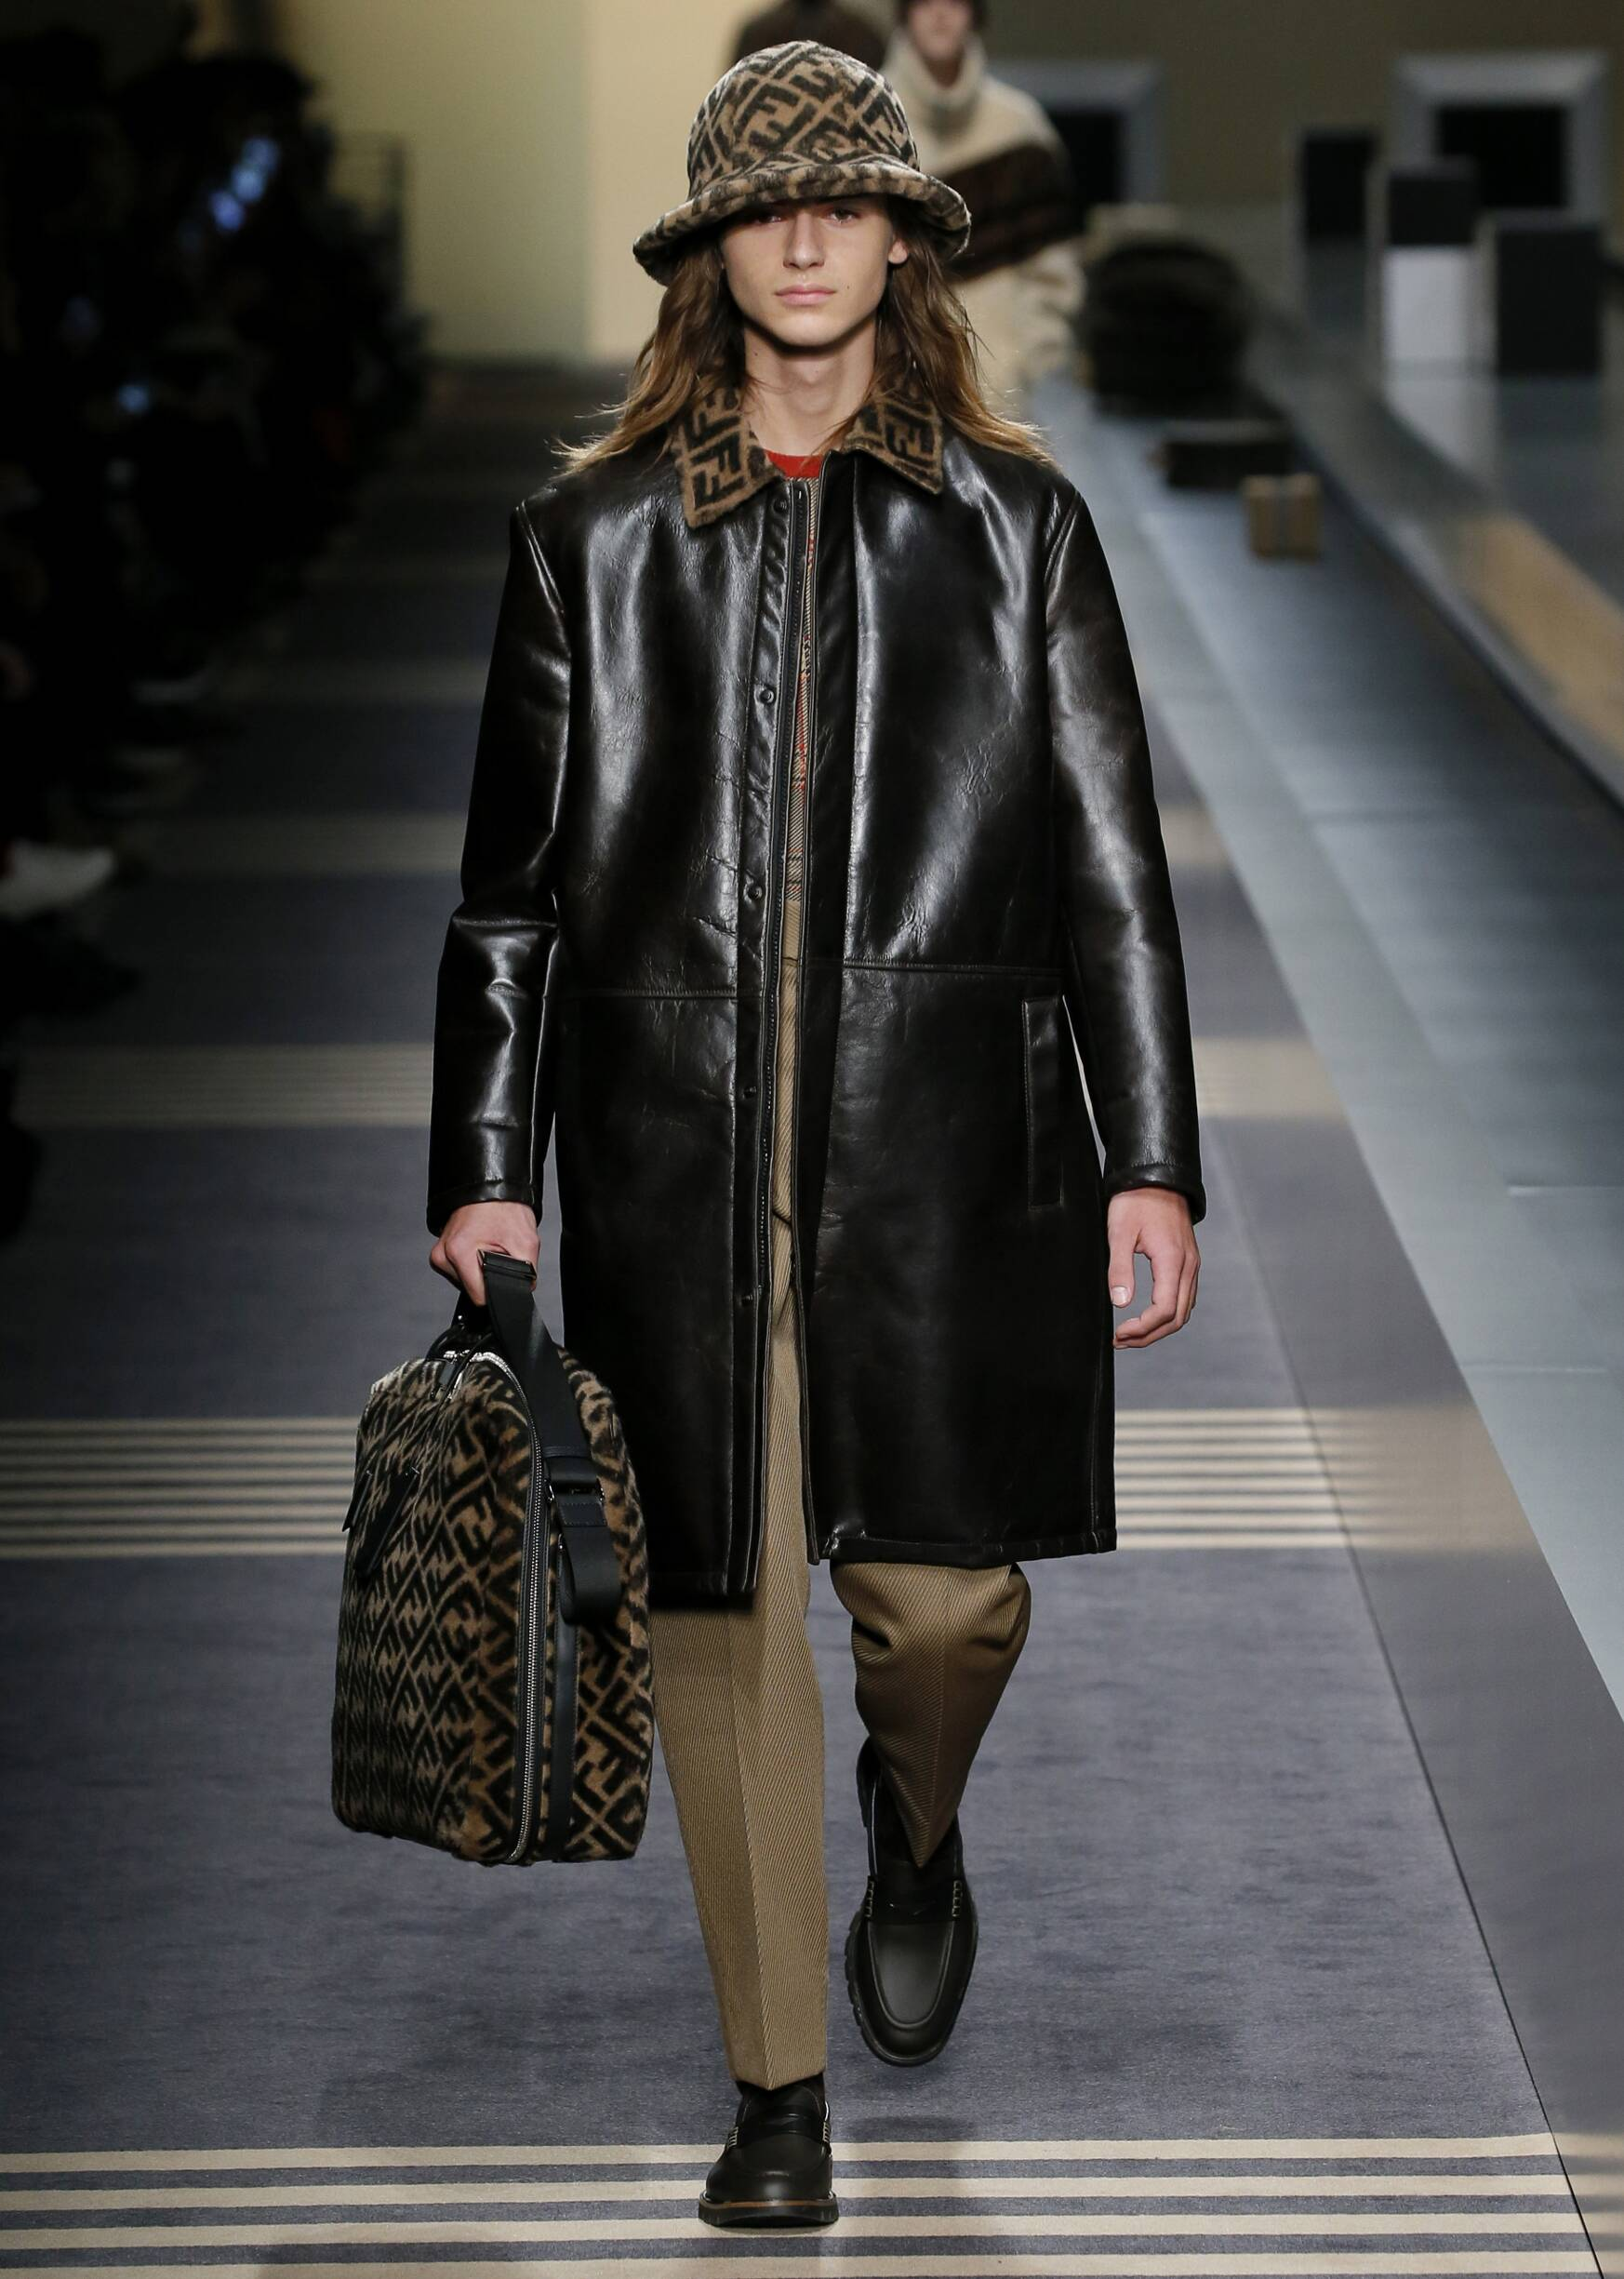 FW 2018-19 Fendi Fashion Show